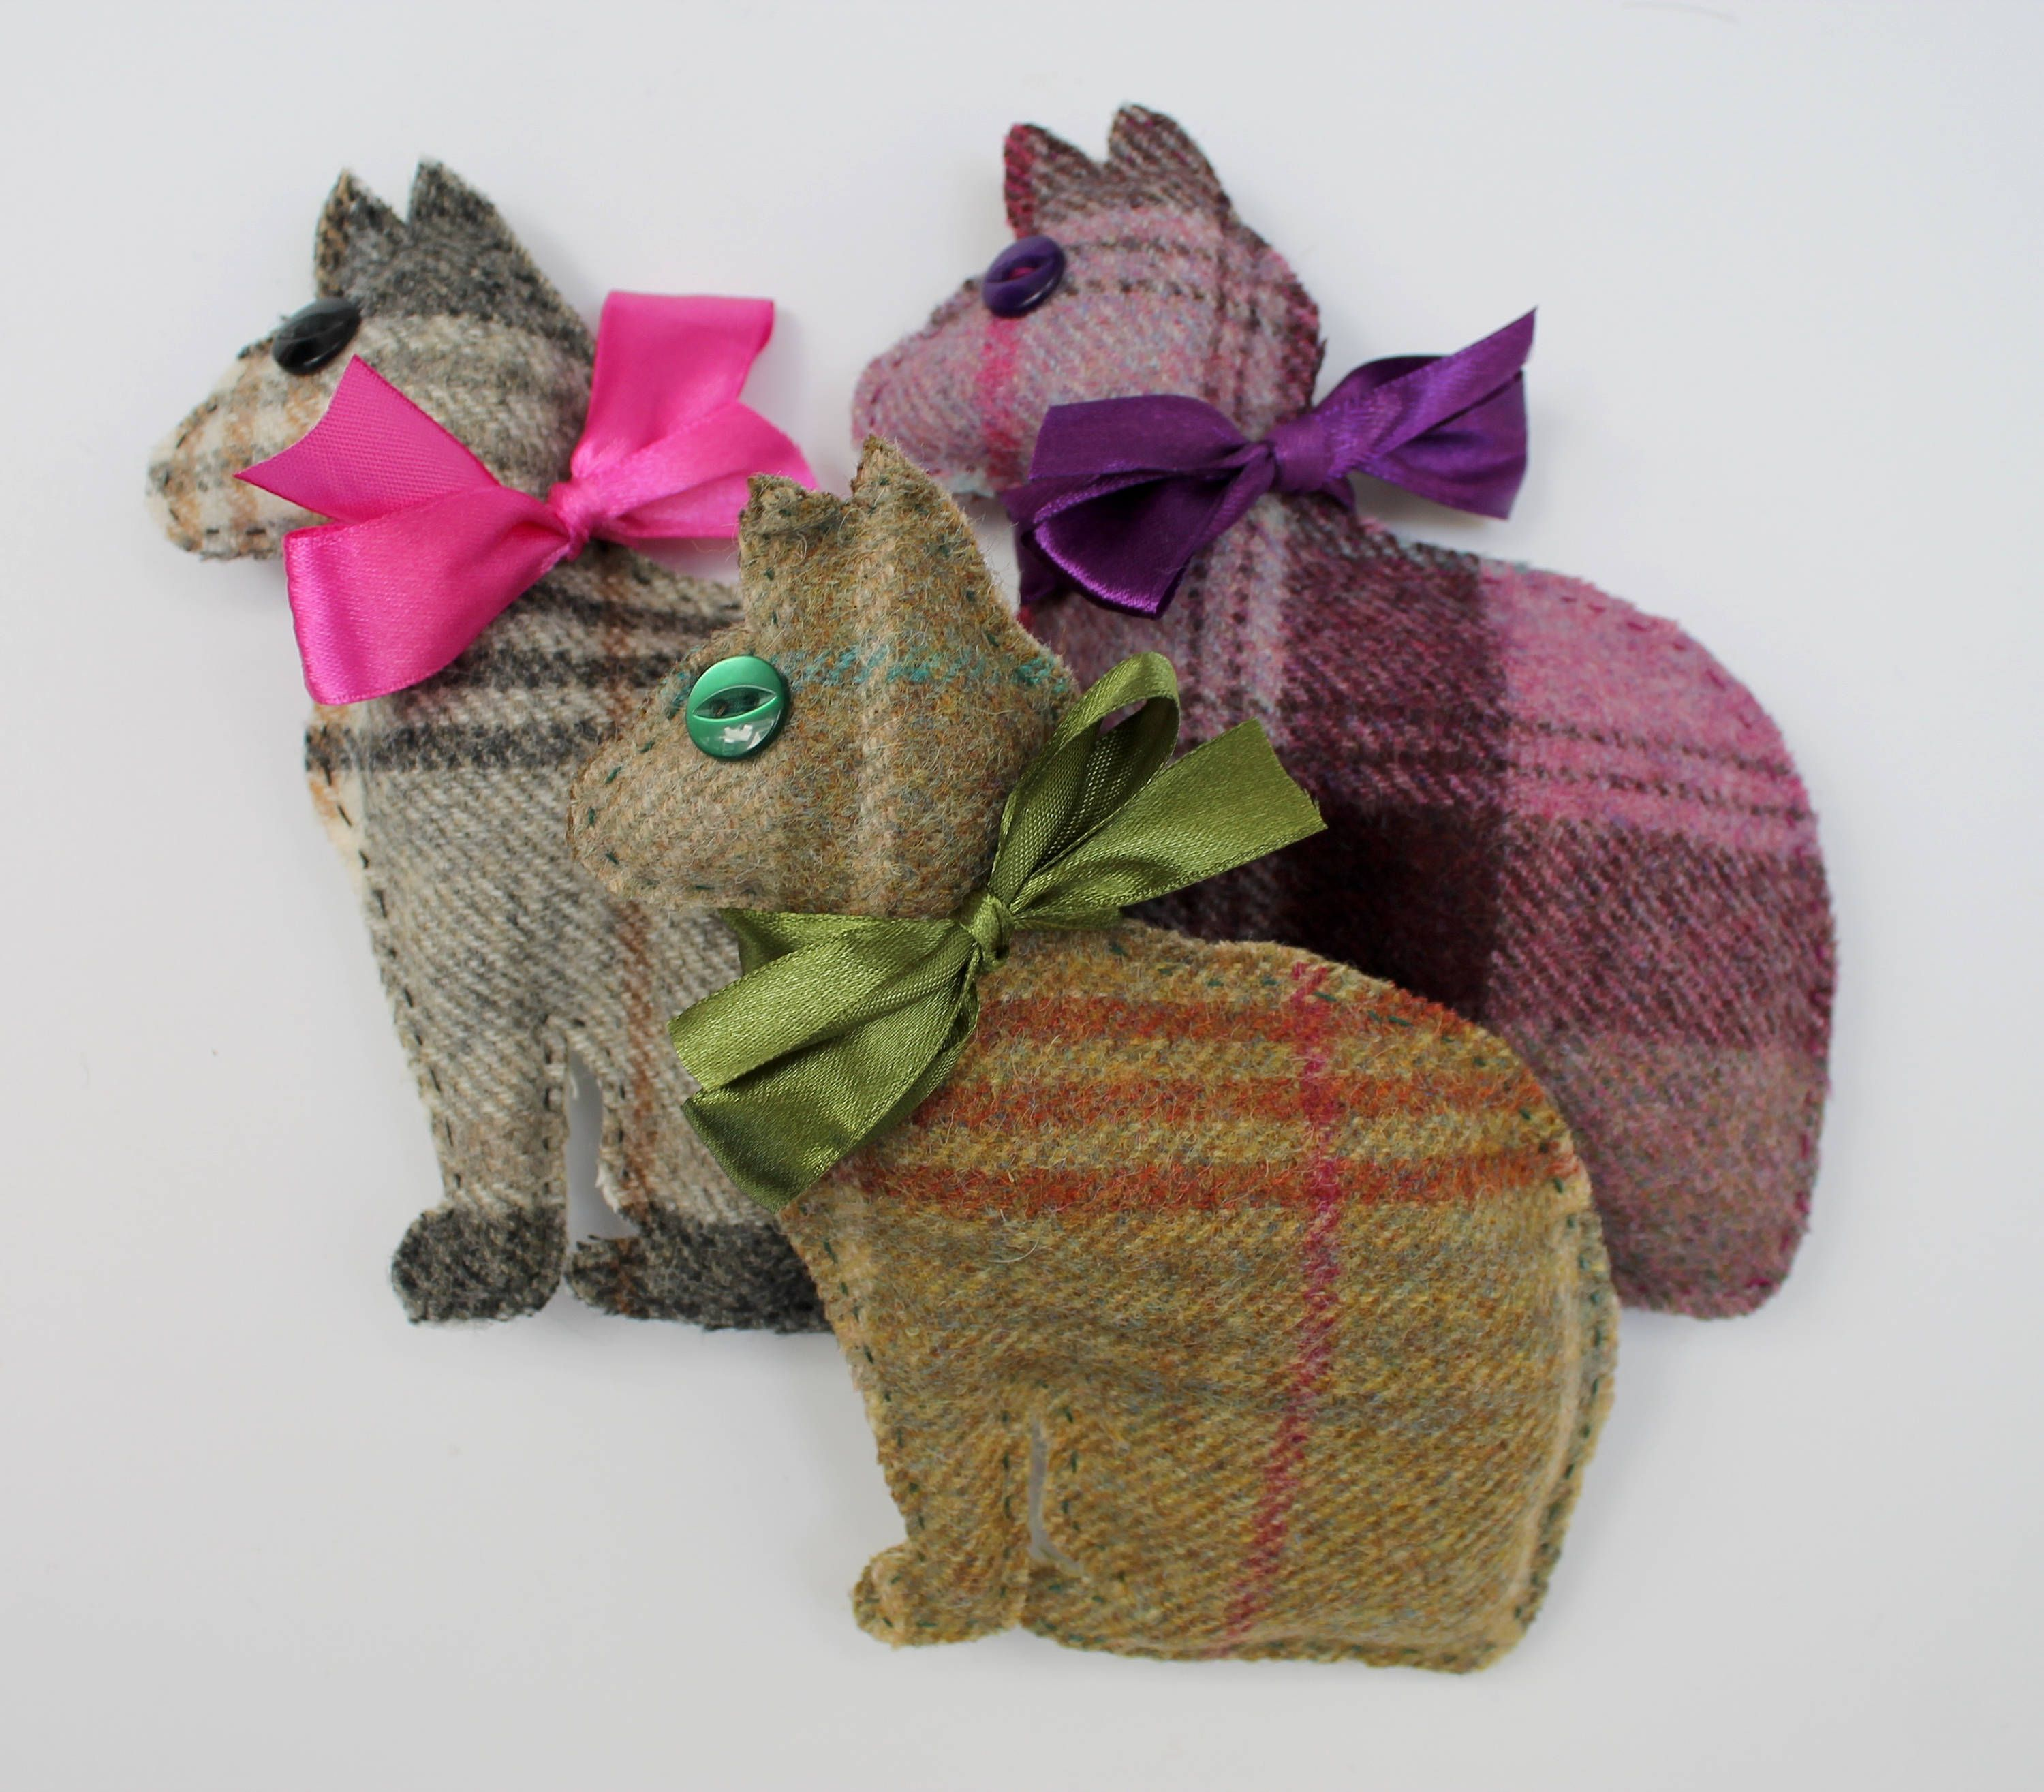 Gift For New Homeowner Woman Cat Lavender Sachet In Tweed Dried Lavender Bag In 3